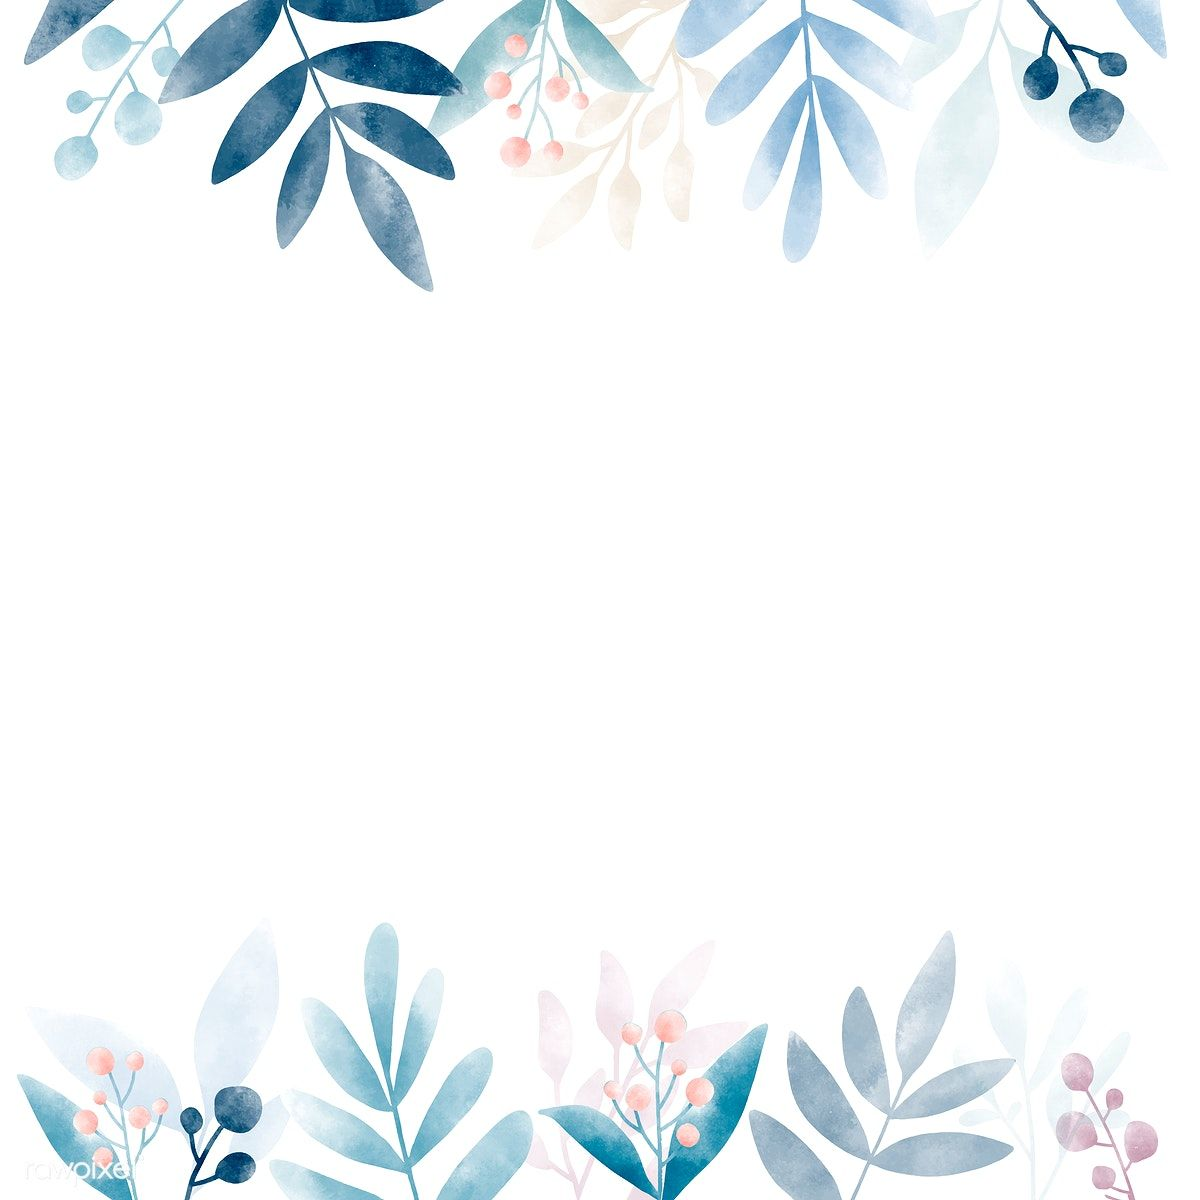 Watercolour Leaves Frame Border Clip Art Graphic Design Png